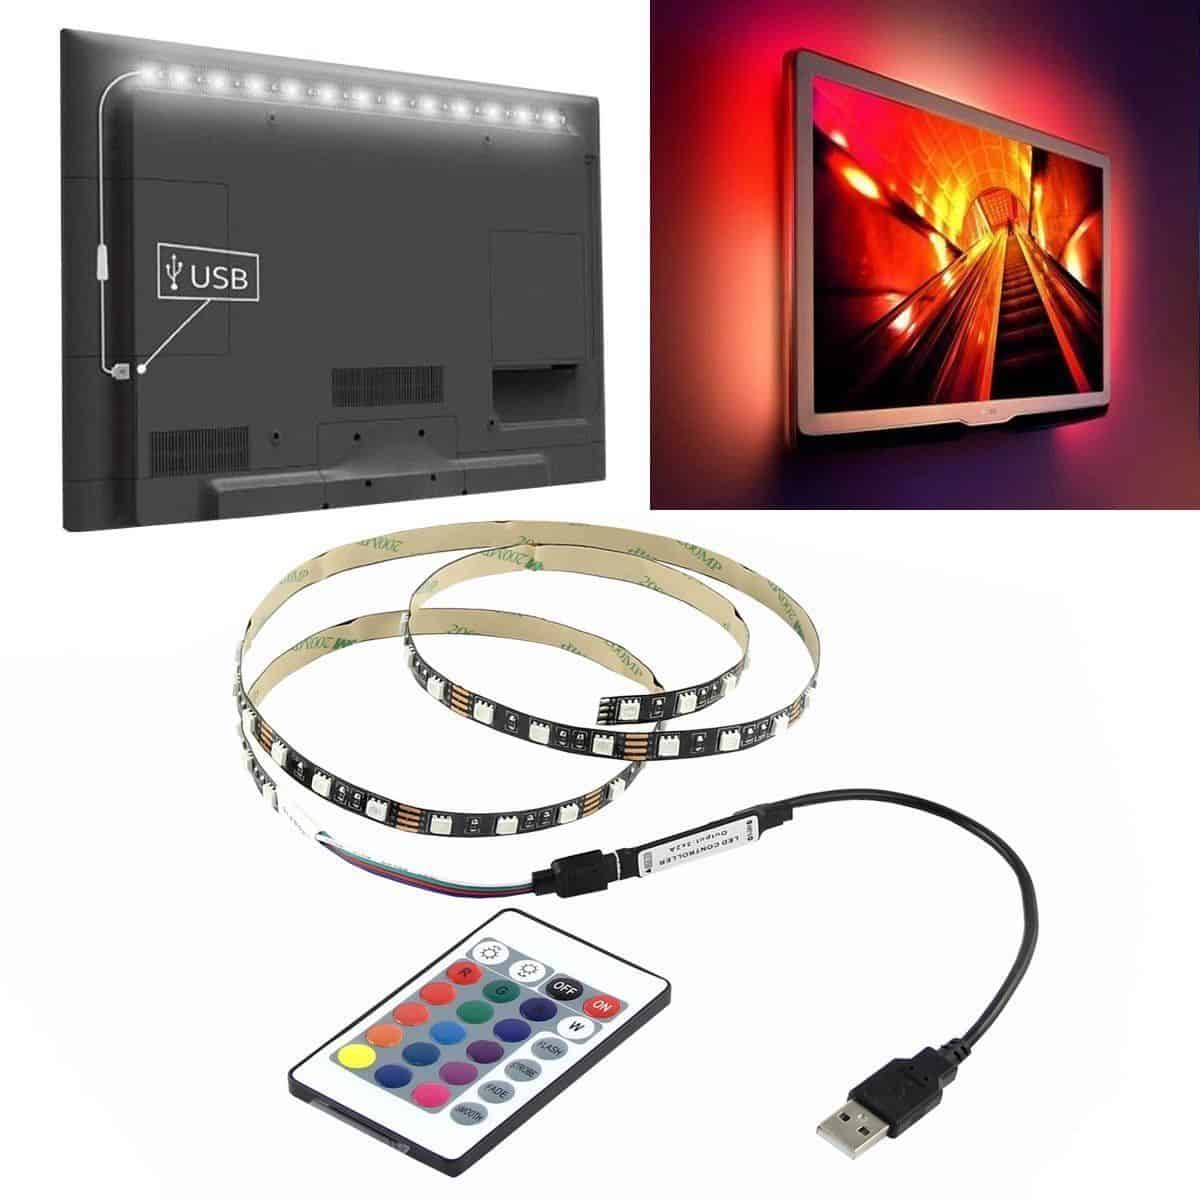 1 meter usb rgb led streifen vom typ 5050 mit regler und fernbedienung jetzt f r zusammen nur 3. Black Bedroom Furniture Sets. Home Design Ideas